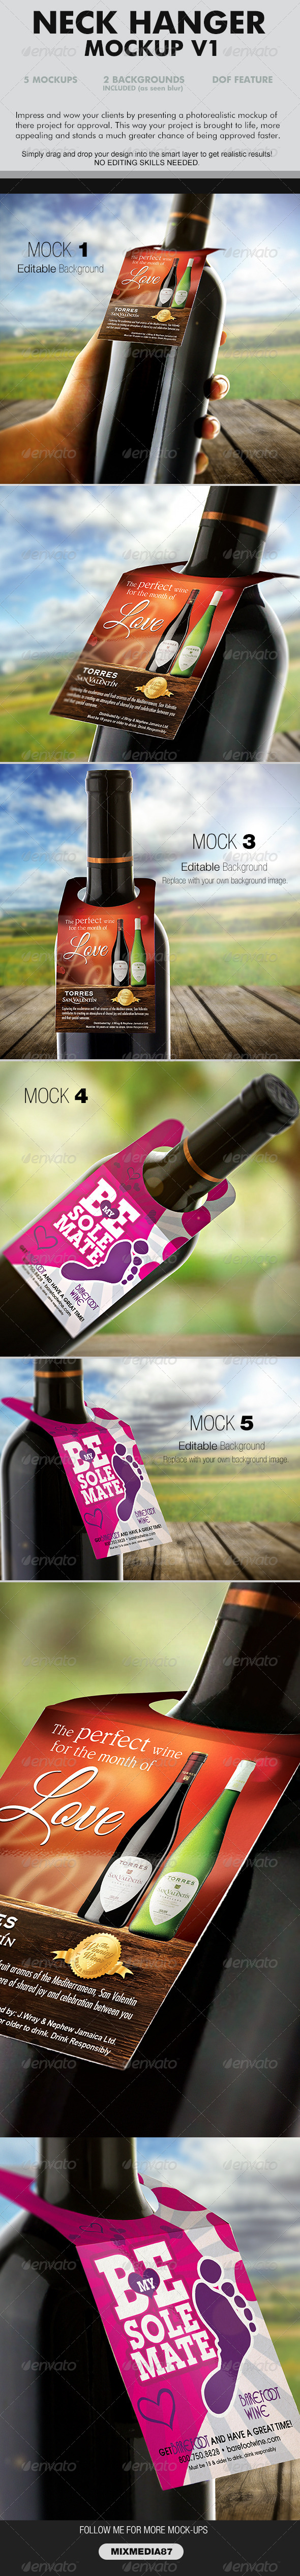 Wine Neckhanger Mockup - Product Mock-Ups Graphics